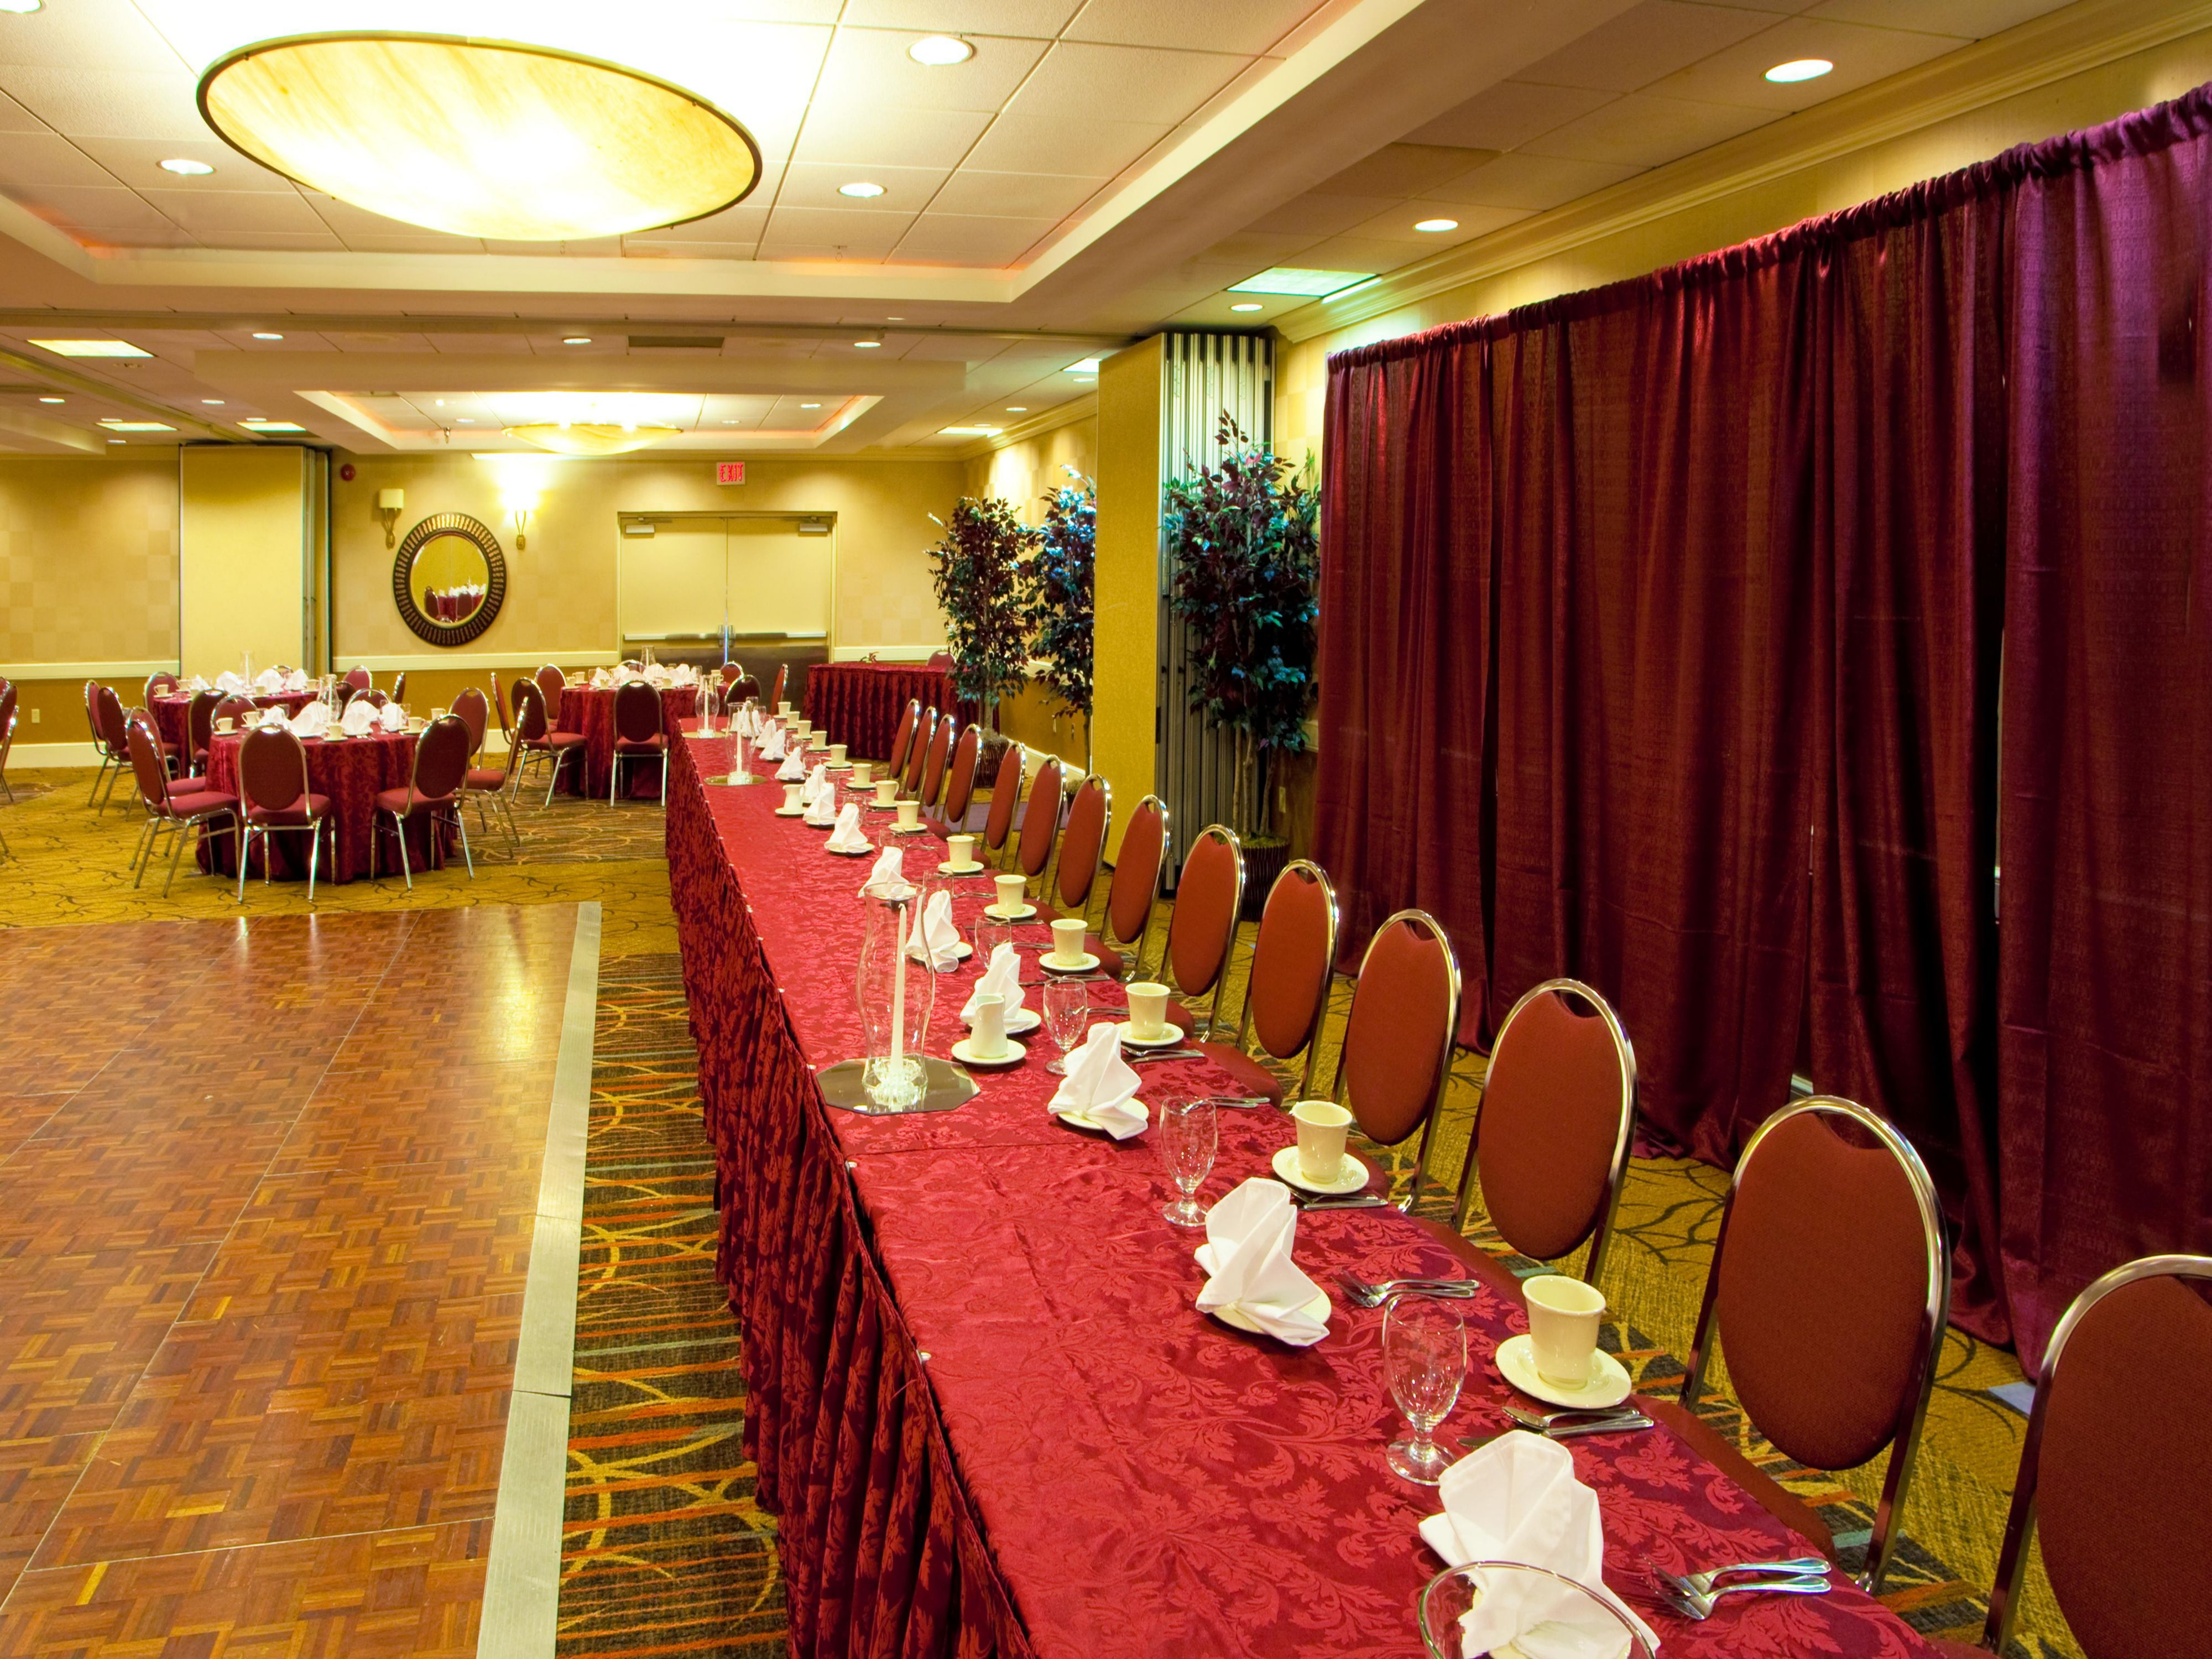 We specialize in making your meeting/event just perfect!